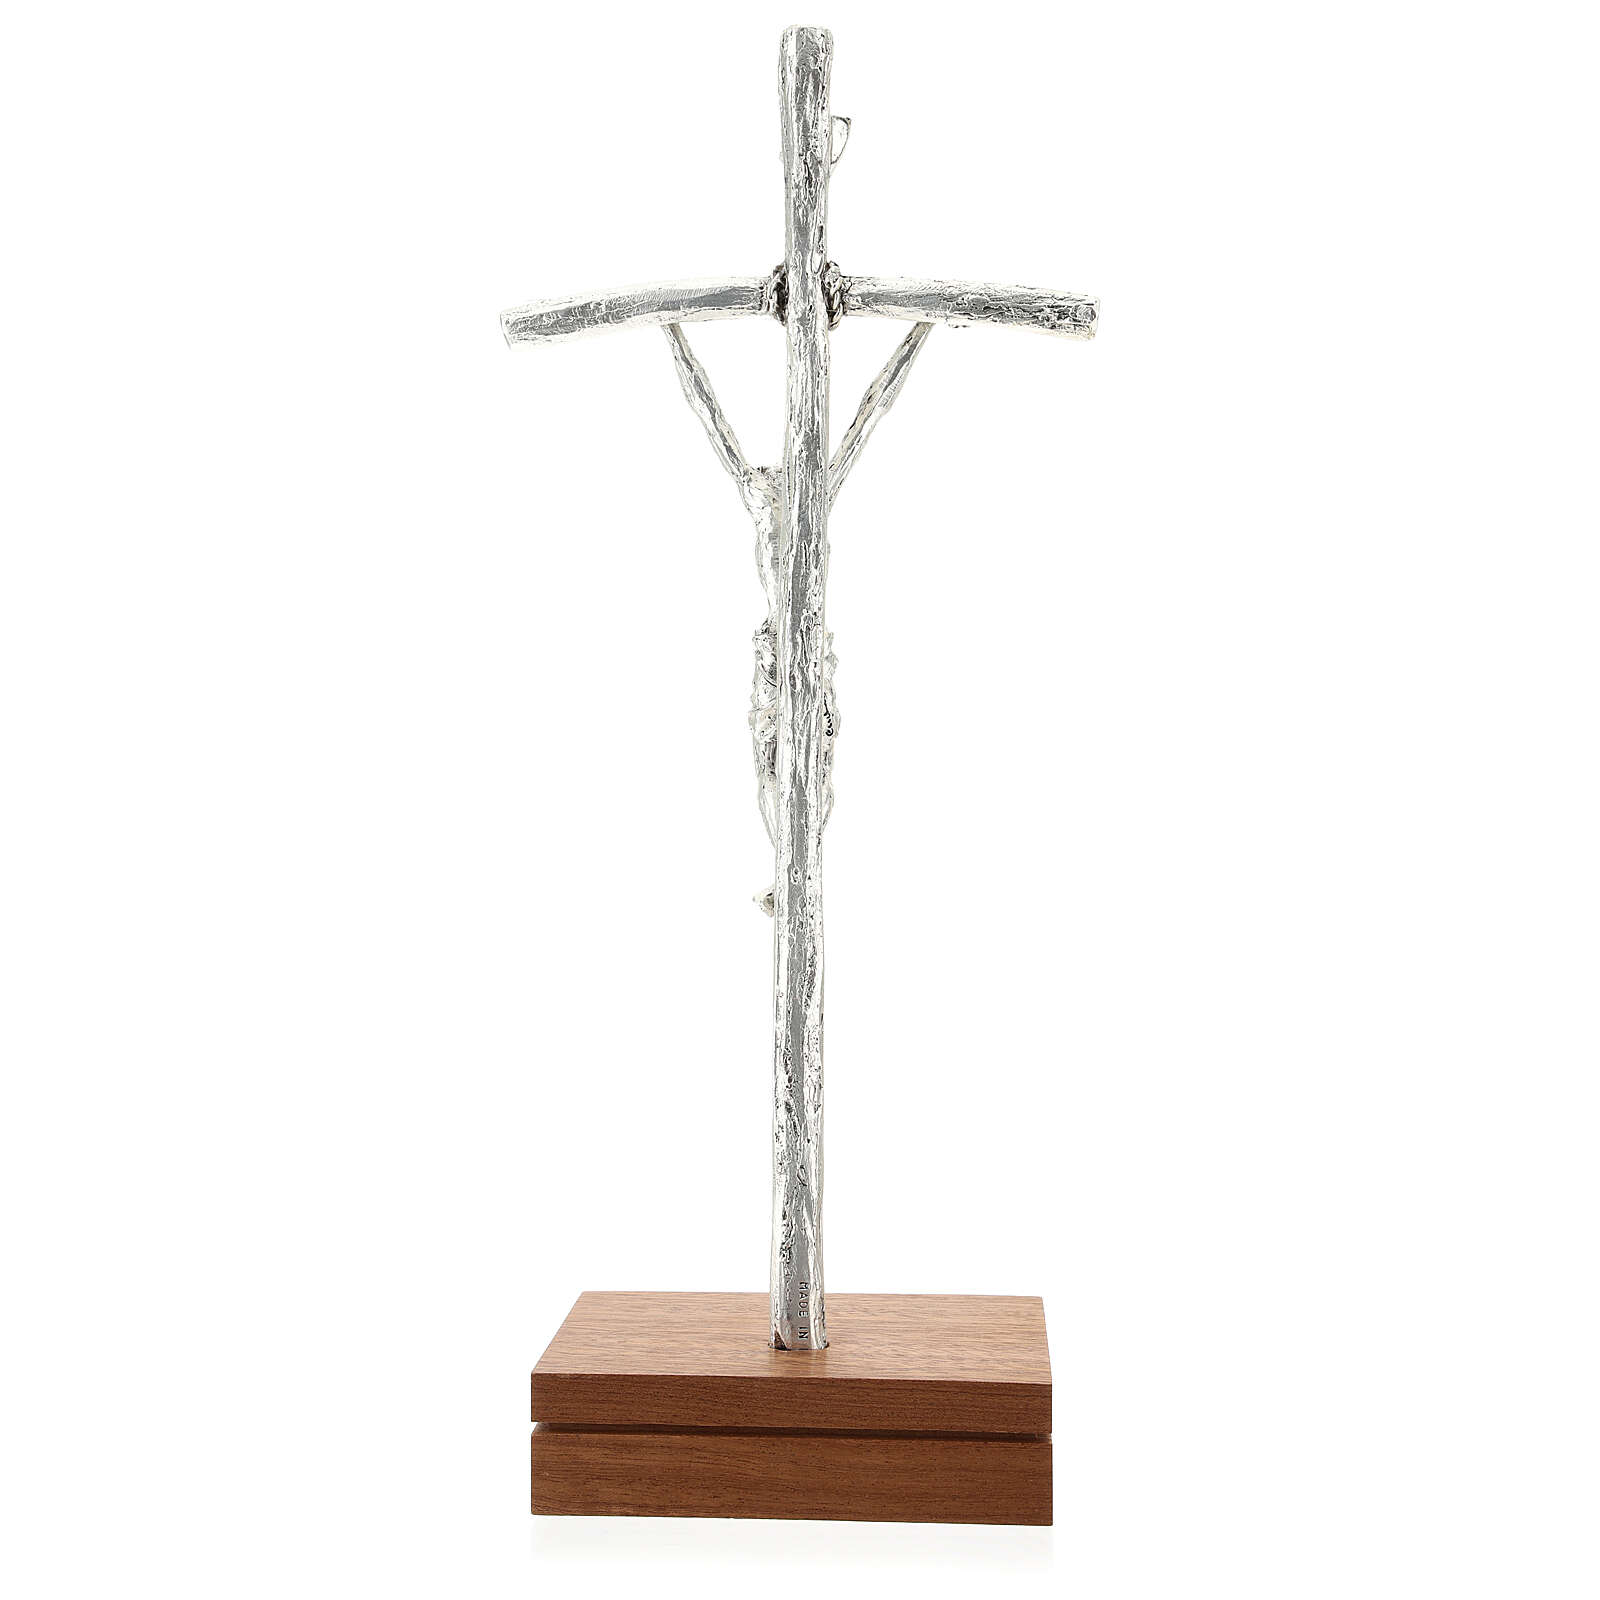 Crucifix de table image Jean Paul II avec base, métal argent&ea 4